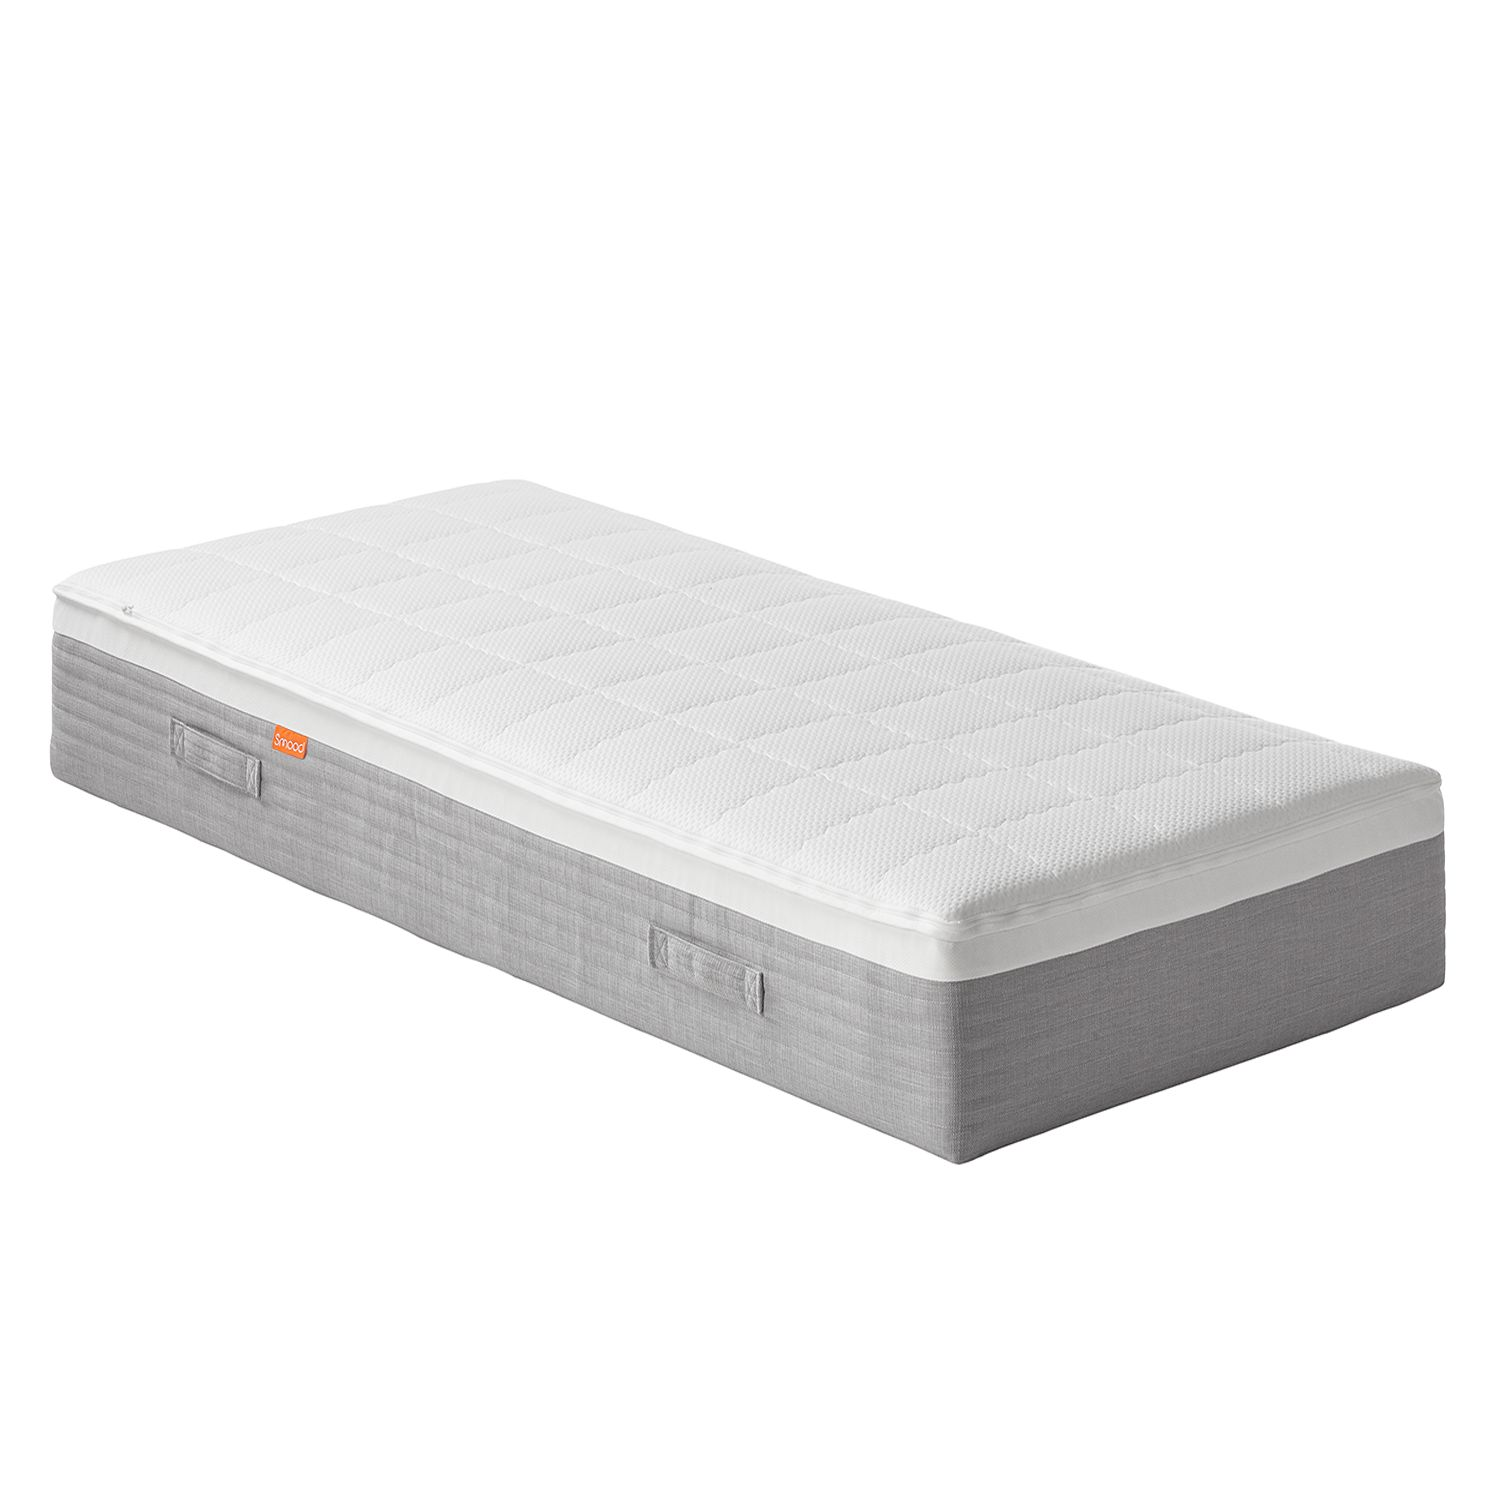 Boxspring-Wendematratze Smood Select - 90 x 200cm